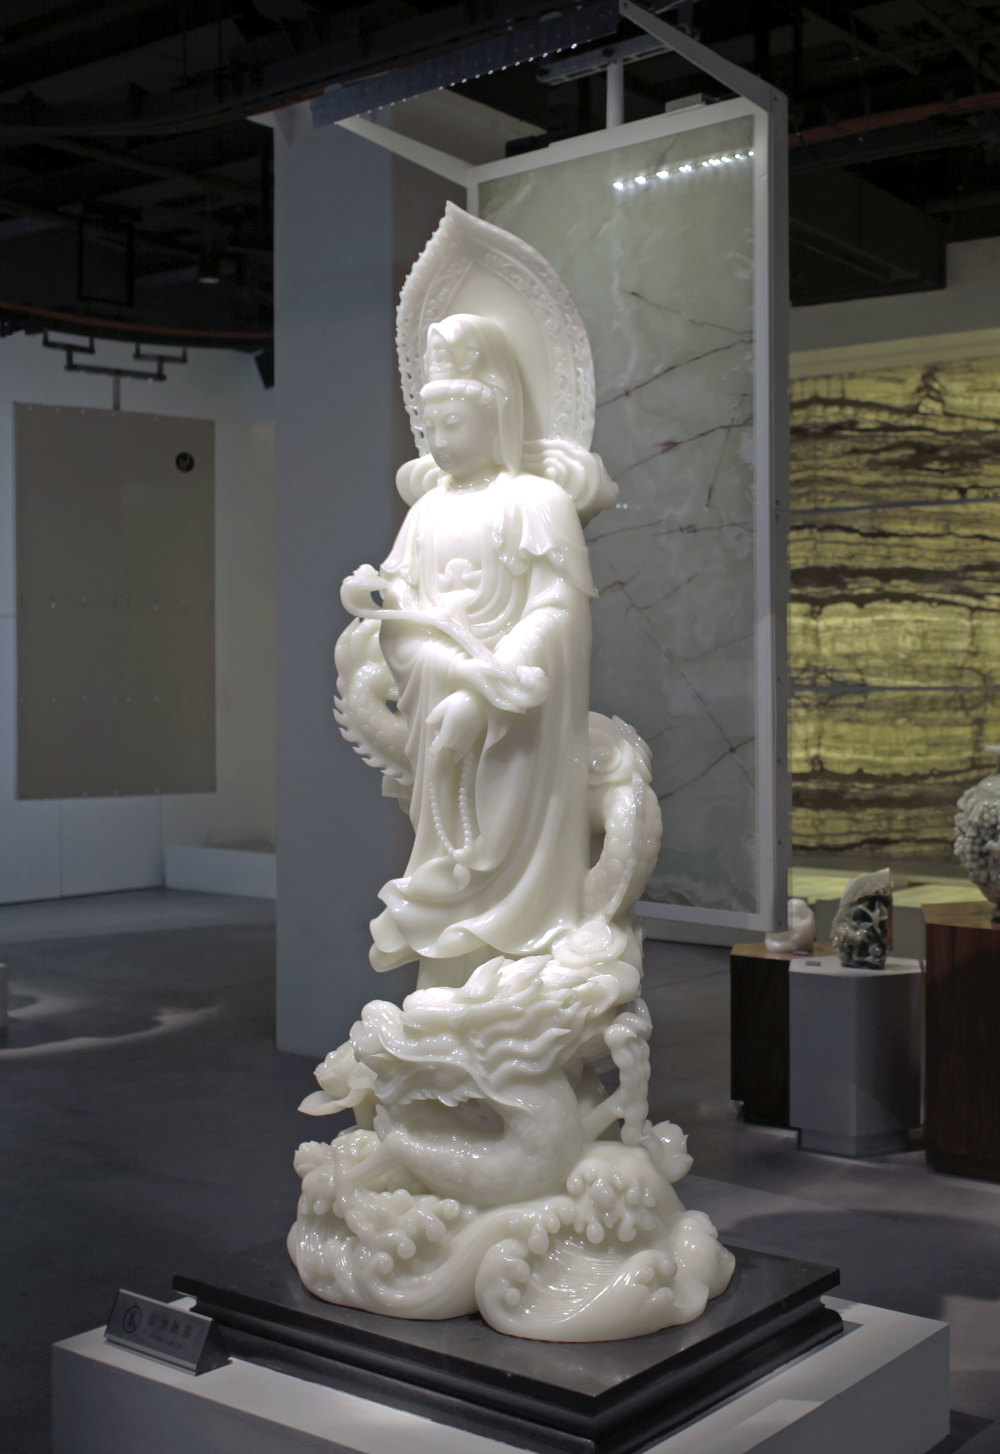 Chinese sculpture made of white onyx displayed at the Skyword Showroom